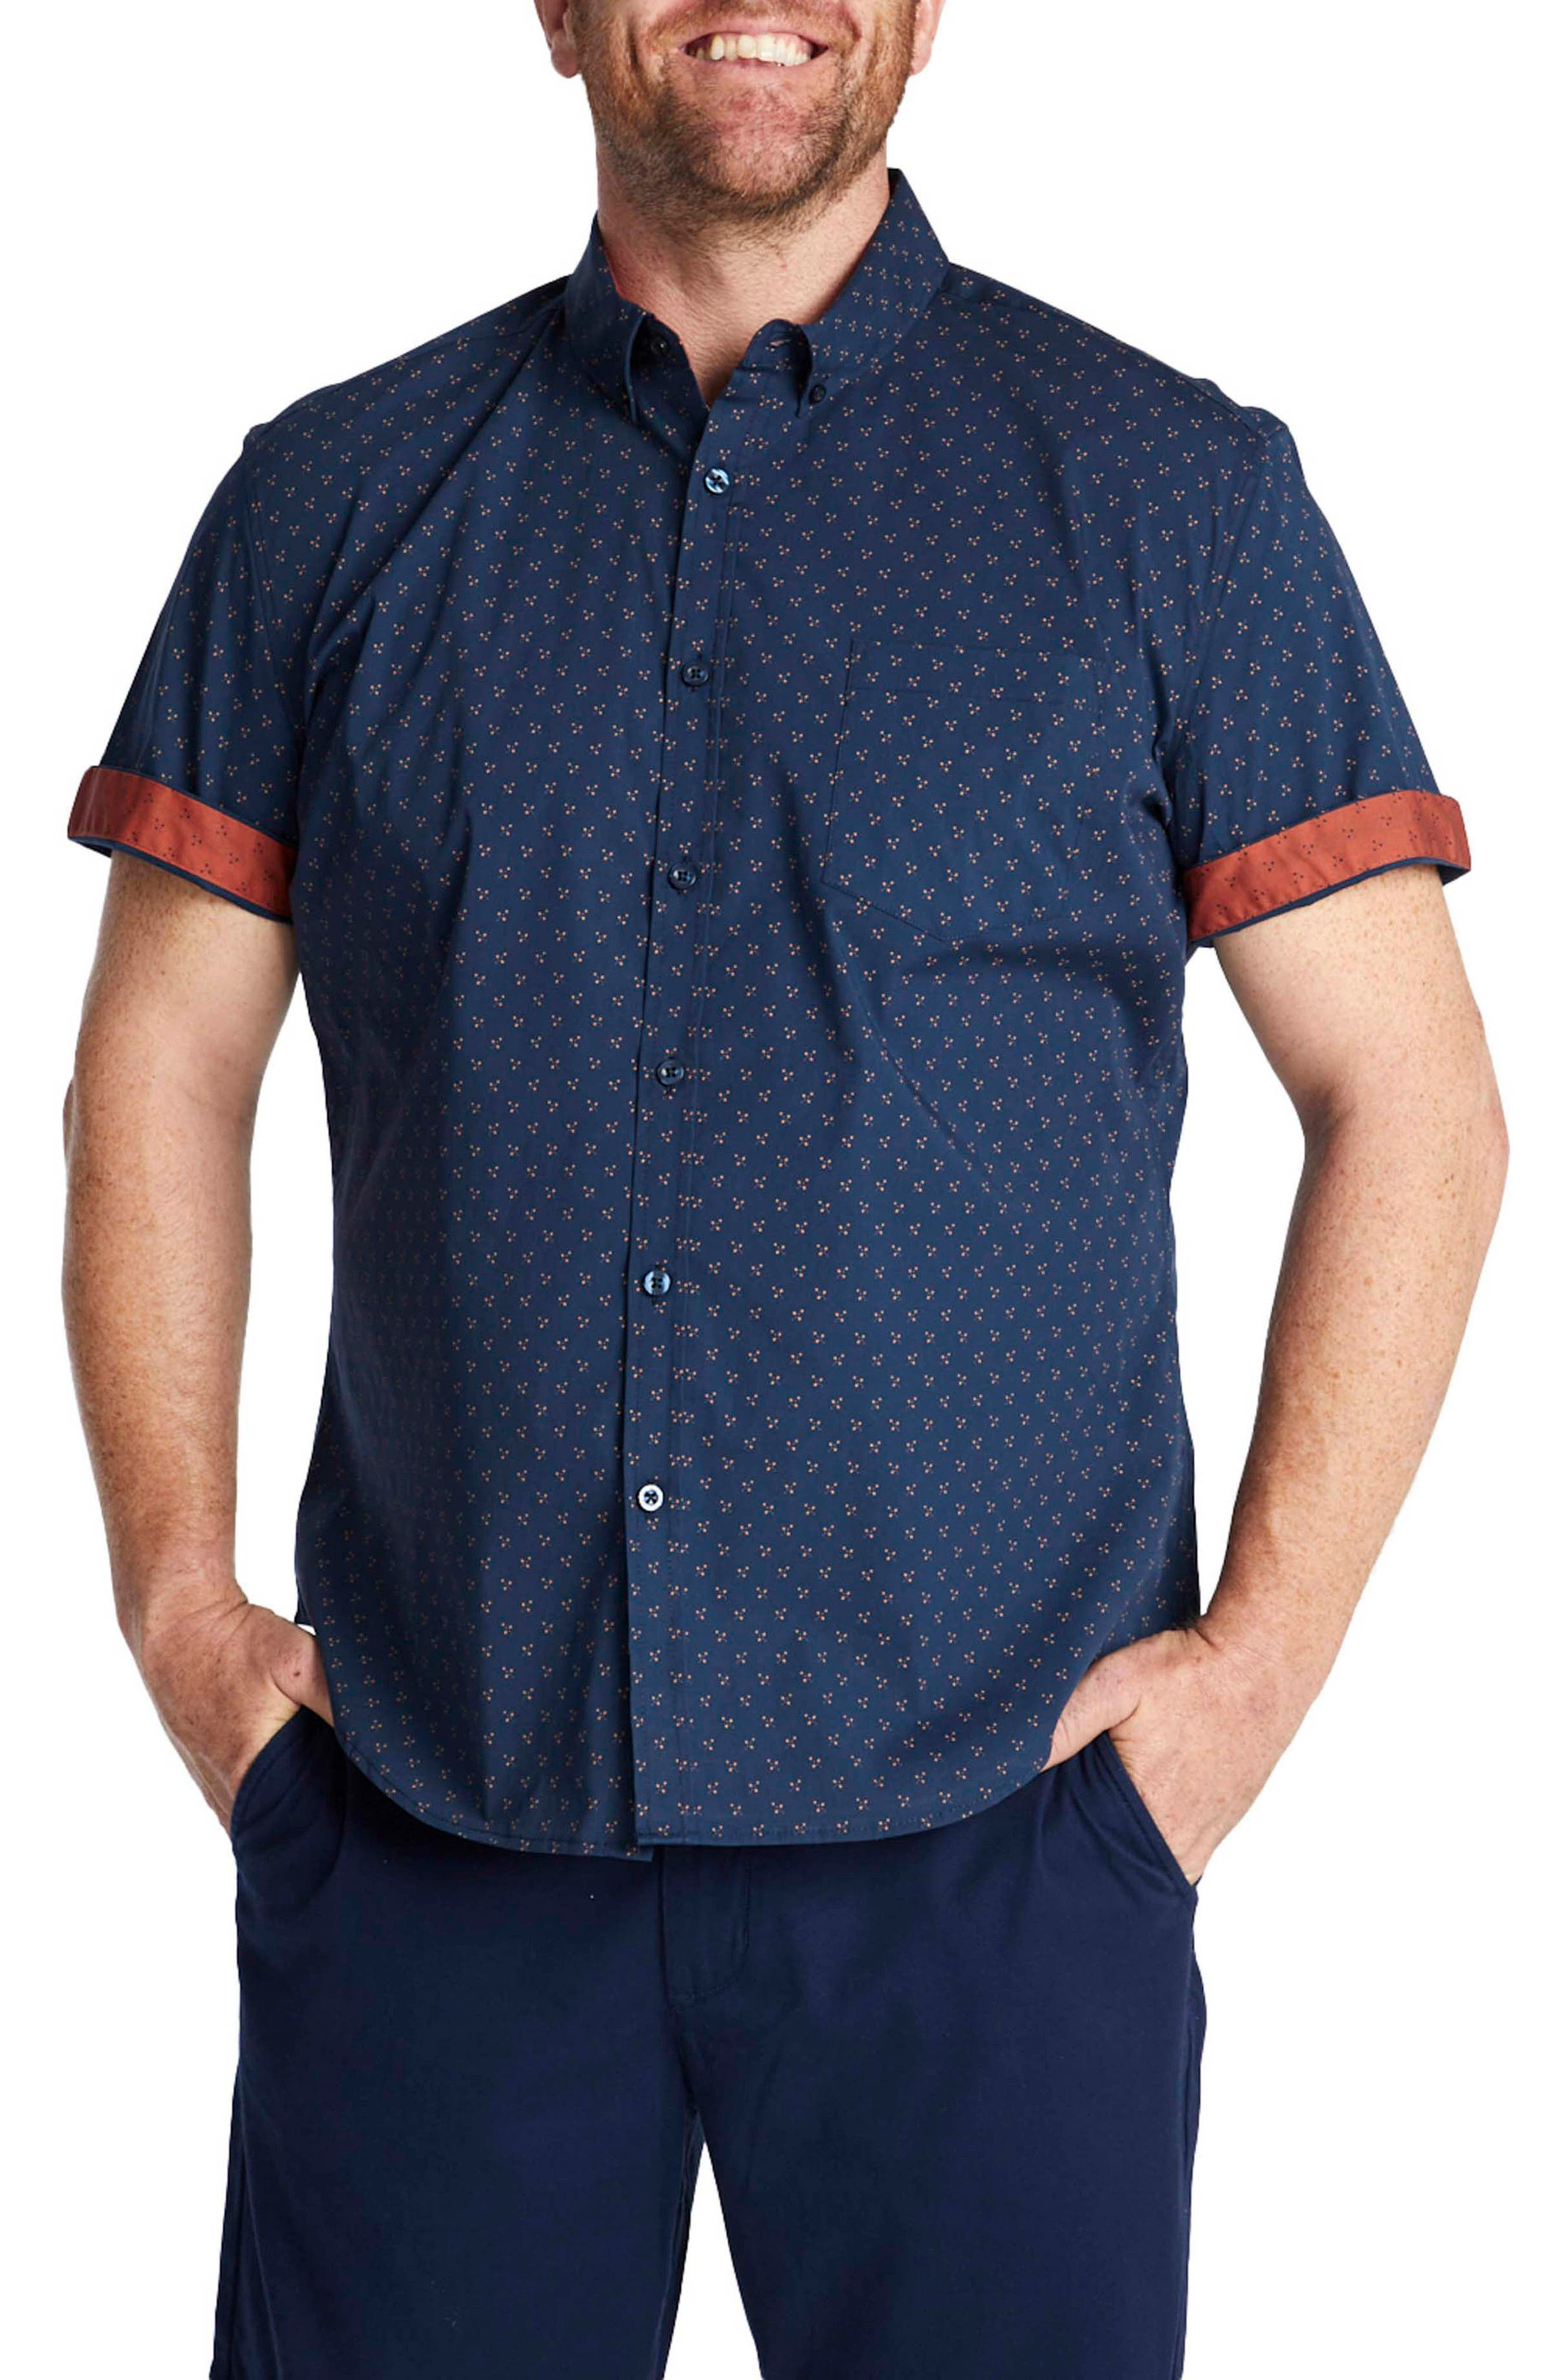 Marling Patterned Short Sleeve Stretch Button-Down Shirt